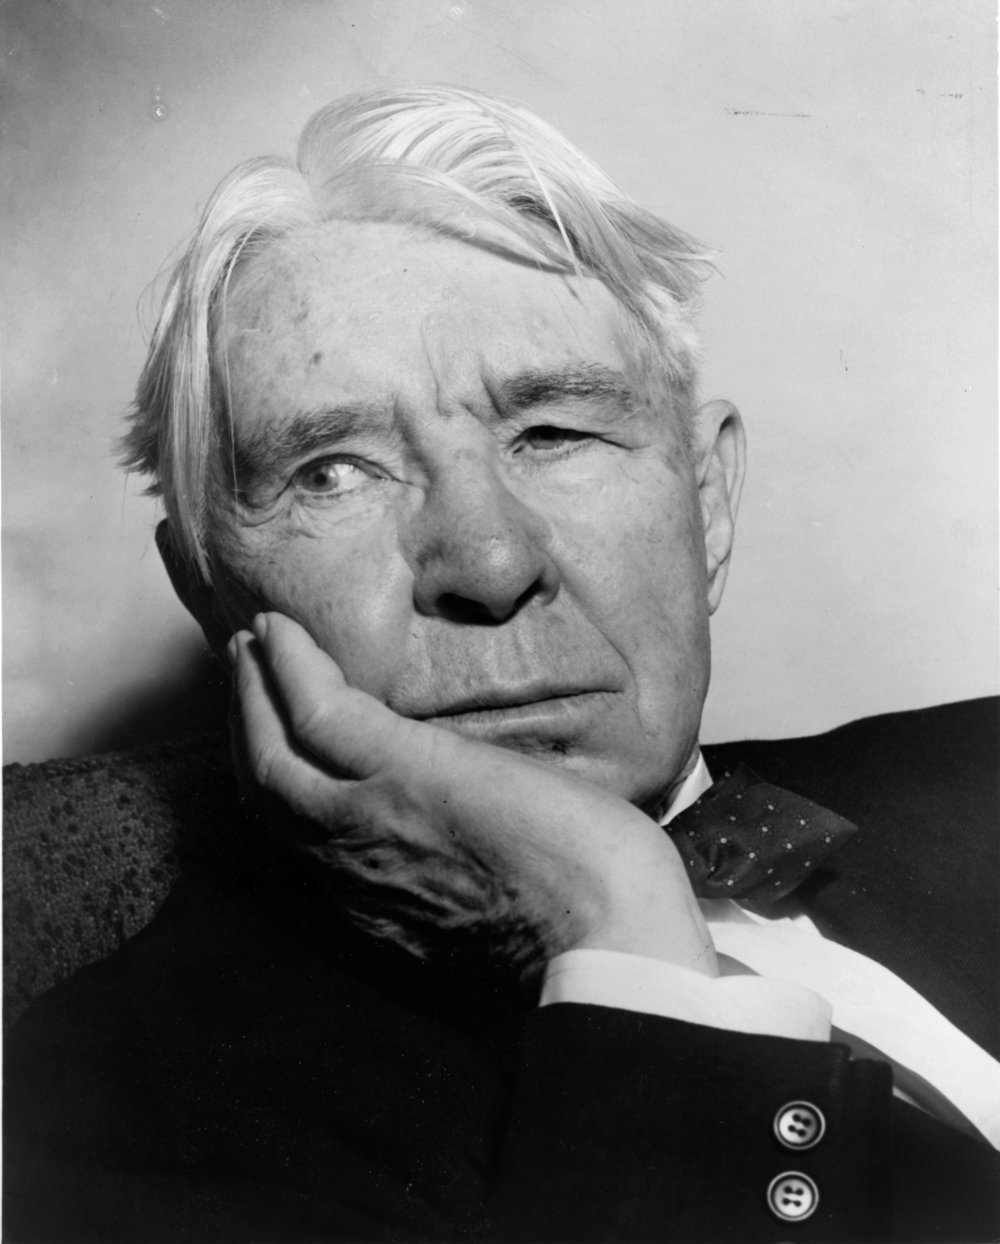 "The People's Poet - Carl Sandburg was the people's poet, and he was a poet who believed in the people. He wrote about farmhands, street vendors, garment workers. He wrote about cracked hands and sore feet. And he wrote about them in a language those workers would have recognized.In a long and prolific career, Sandburg wrote about everyday people and the landscape they lived in. He wrote about cities and prairies, war and industry, love and childhood. He wrote about the dream of America and what it meant to be American. At Sandburg's memorial service—held at the Lincoln Memorial—Lyndon Johnson showed up unannounced to say, ""Carl Sandburg was more than the voice of America, more than the poet of its strength and genius. Carl Sandburg was America.""More about Sandburg."